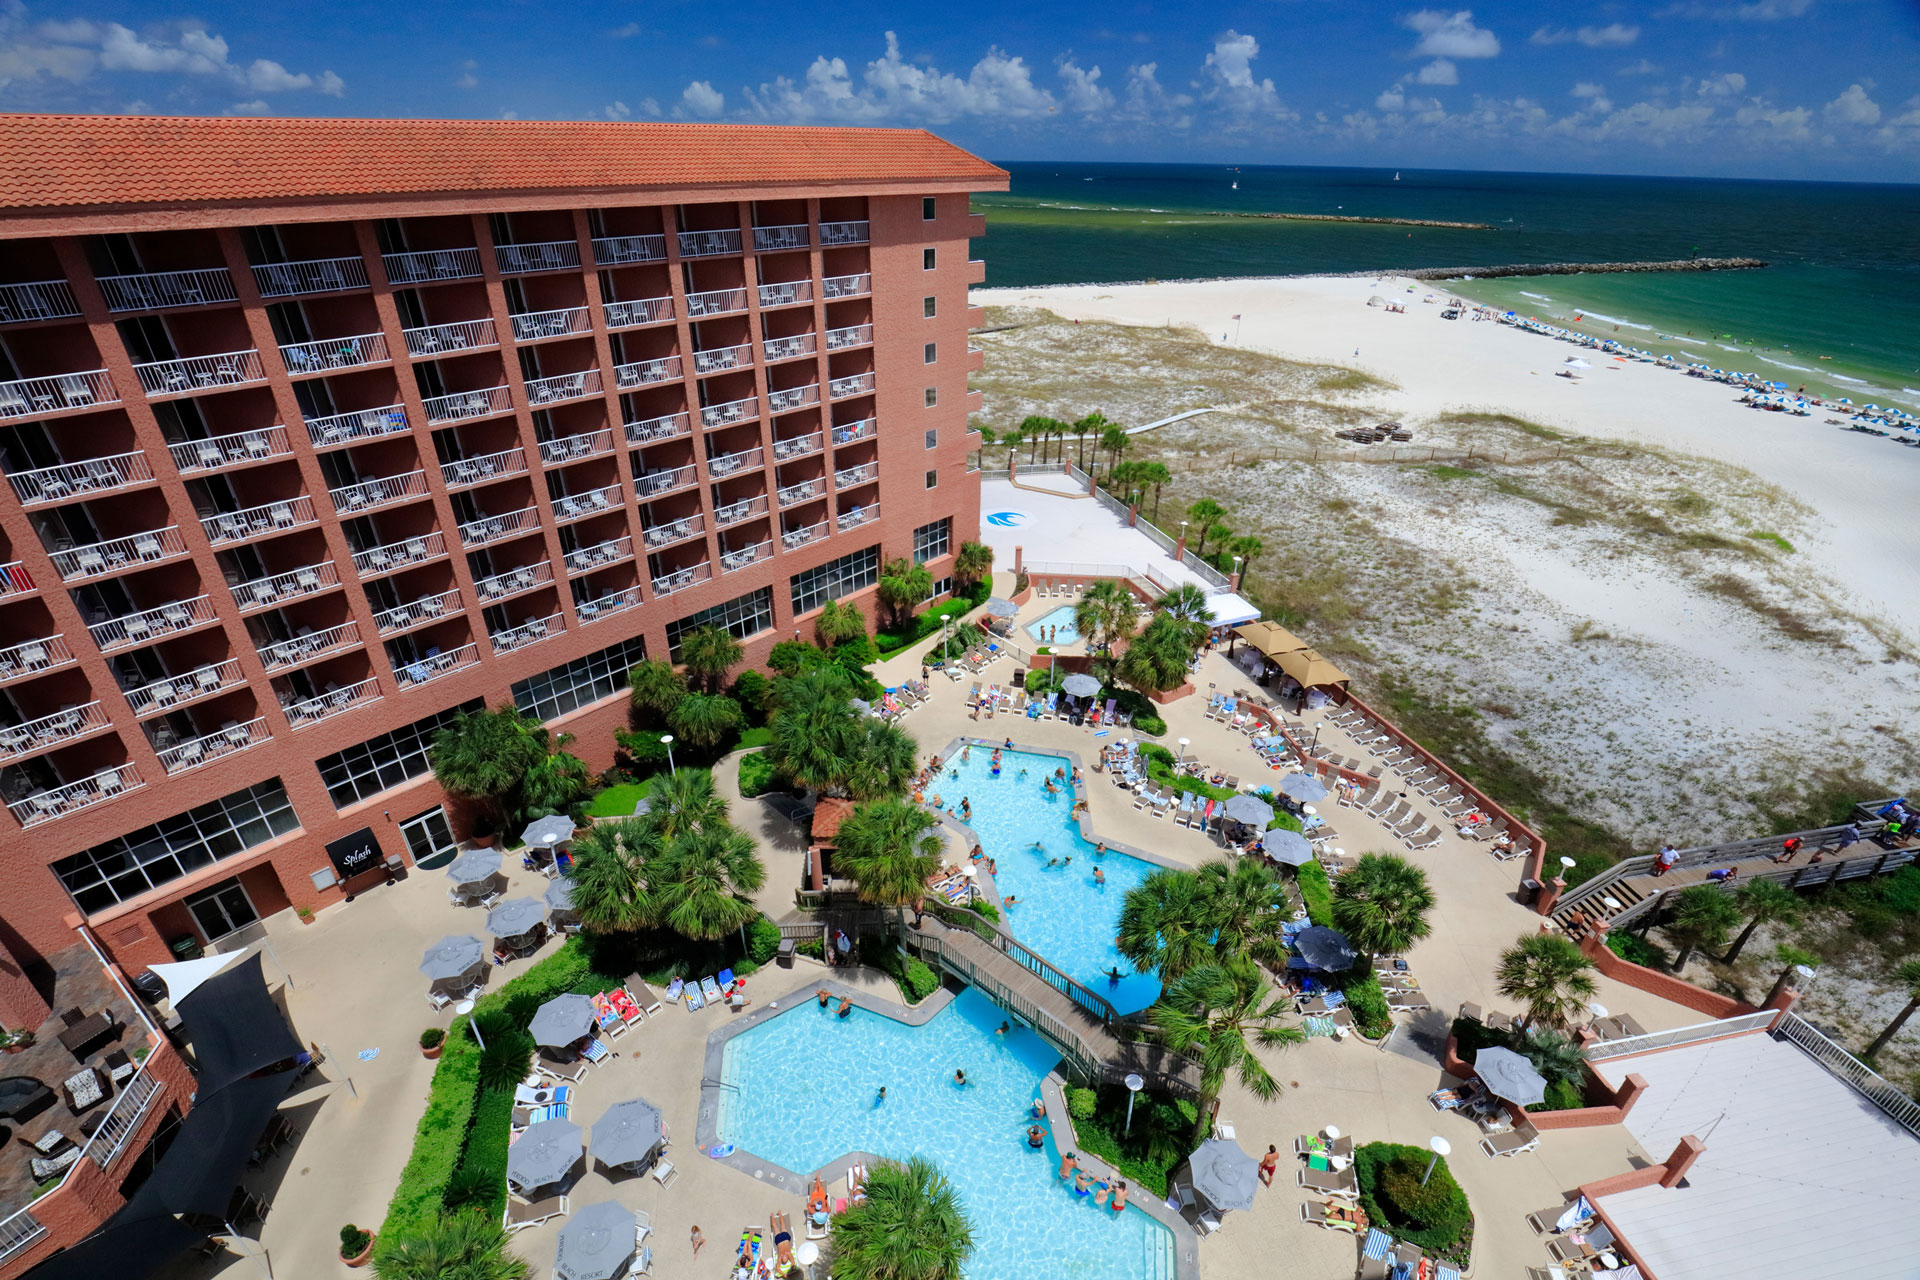 aerial view of perdido beach resort, pool and ocean